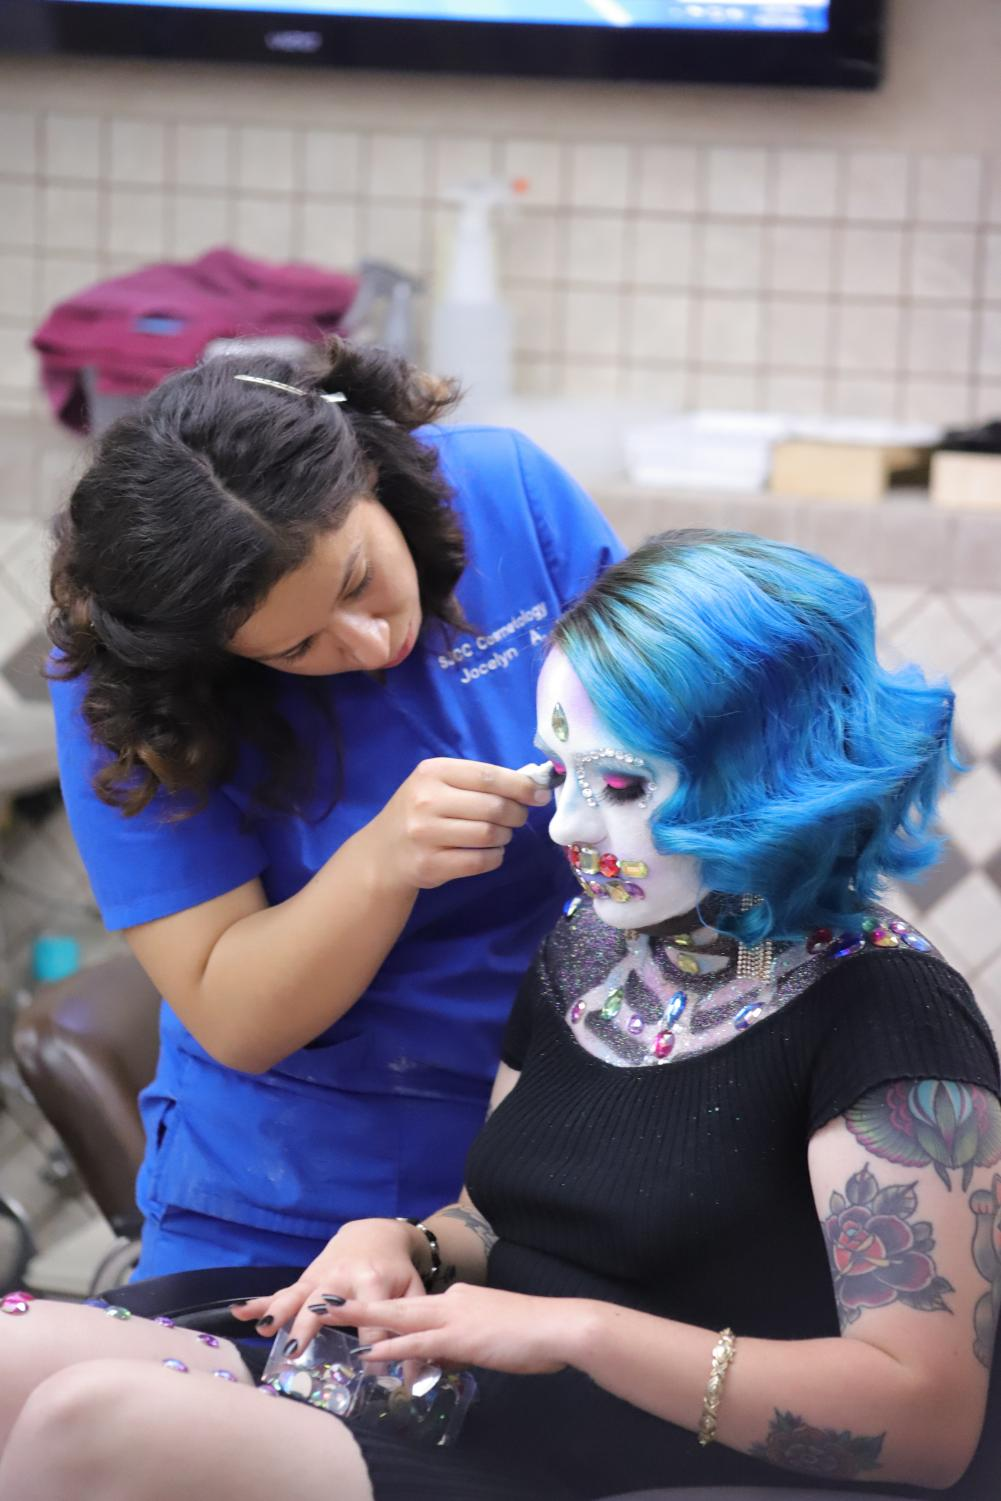 Model+Allison+Burns+looks+down+at+the+gem+stones+that+are+being+applied+to+her+by+technician+Jocelyn+Arias+during+the+2018+Cosmetology+Spring+Hair+Competition+held+in+the+cosmetology+building+at+SJCC+on+Friday%2C+April+27.+Arias+and+Burns+placed+Third+in+%E2%80%9CMakeup%E2%80%9D+and+Fourth+in+%E2%80%9CHair%E2%80%9D+at+the+Spring+Hair+show+held+at+the+Glasshouse+later+that+night.